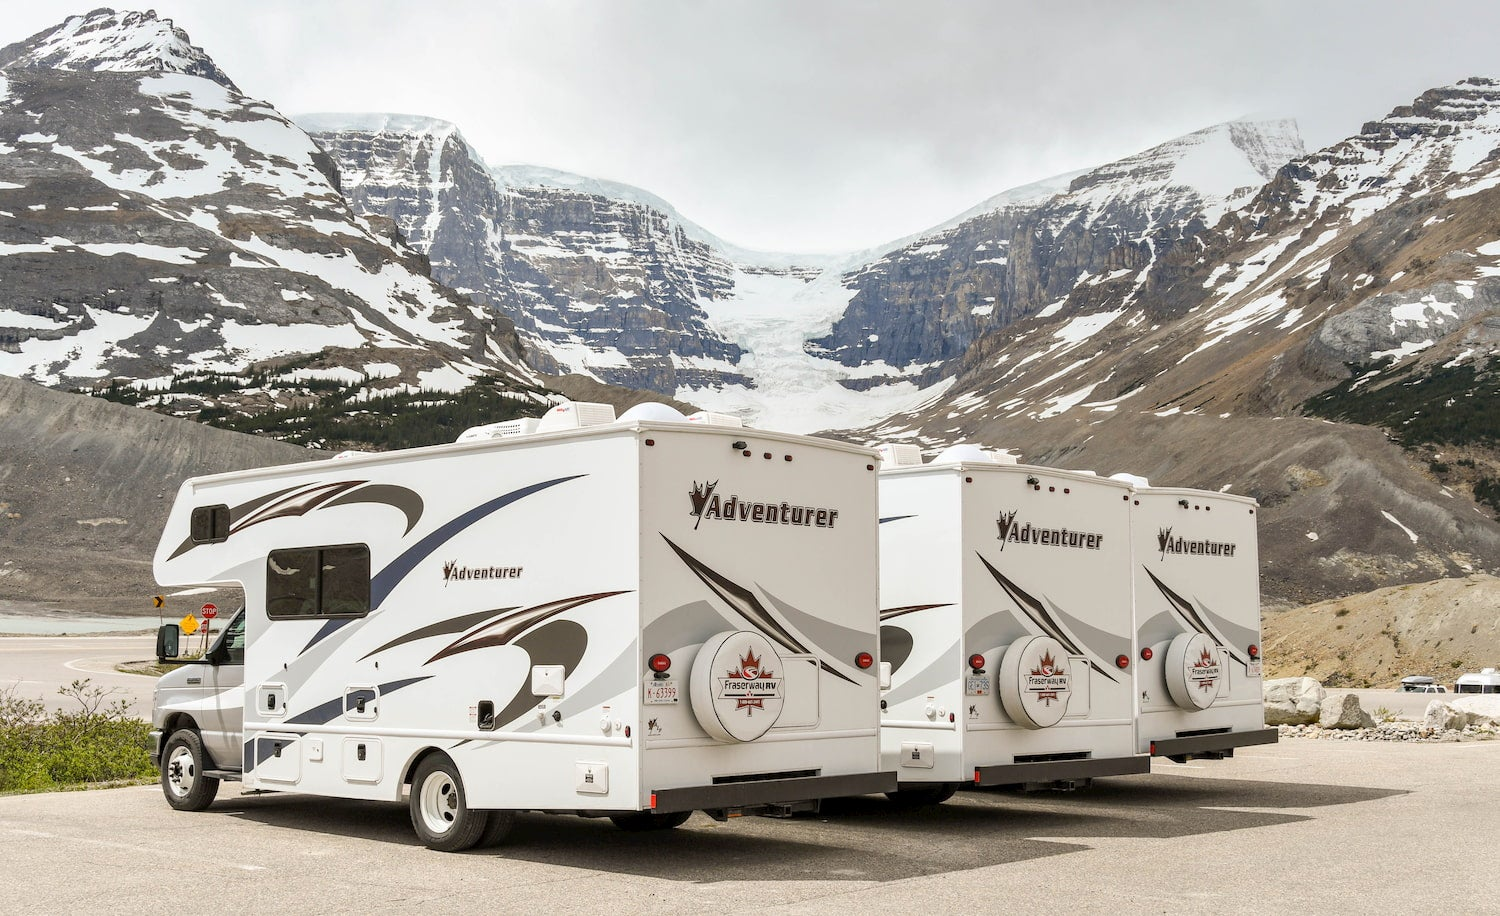 row of RVs infront of snowcapped mountains